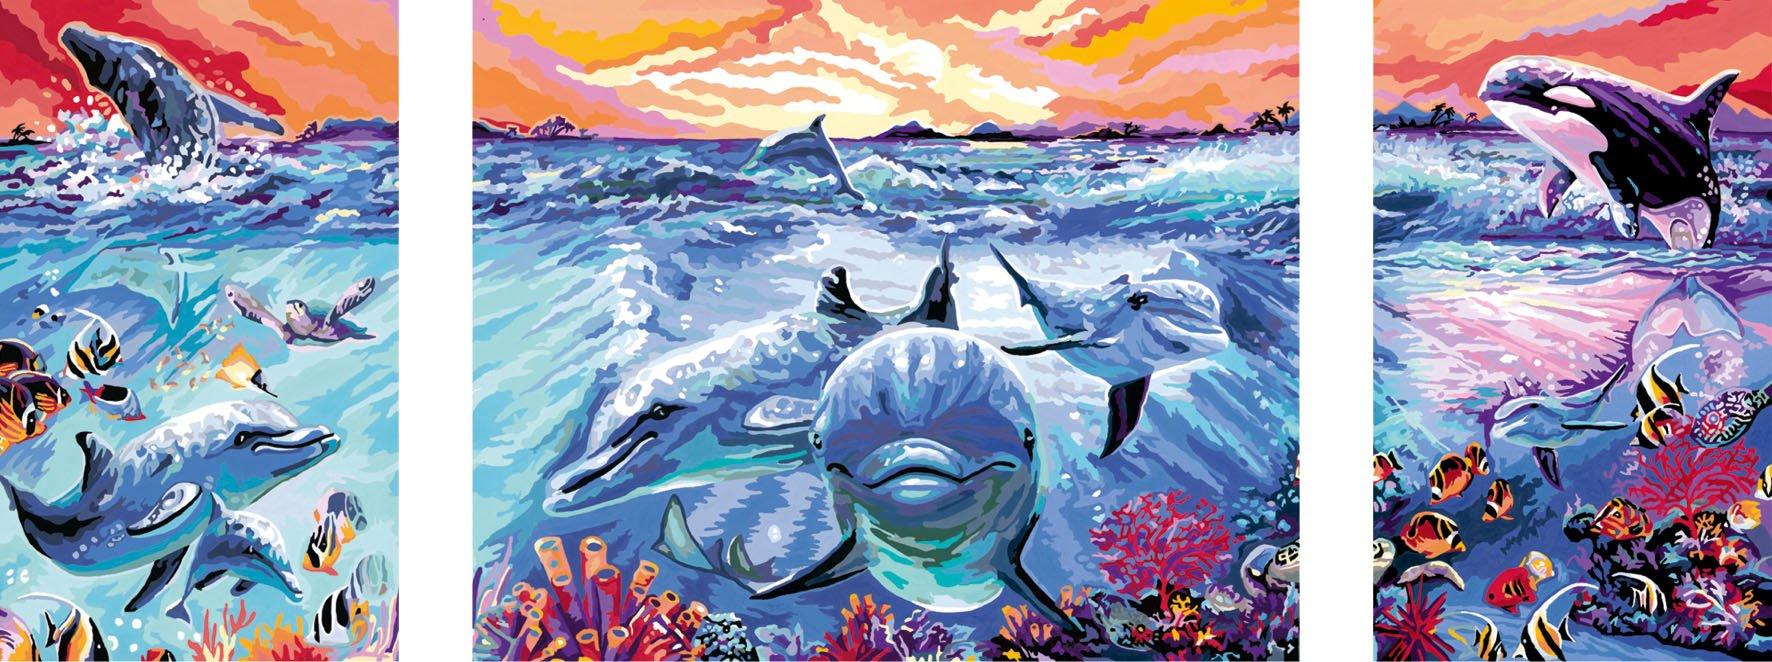 Underwater Paint By Number Kits • Paint By Number For Adults